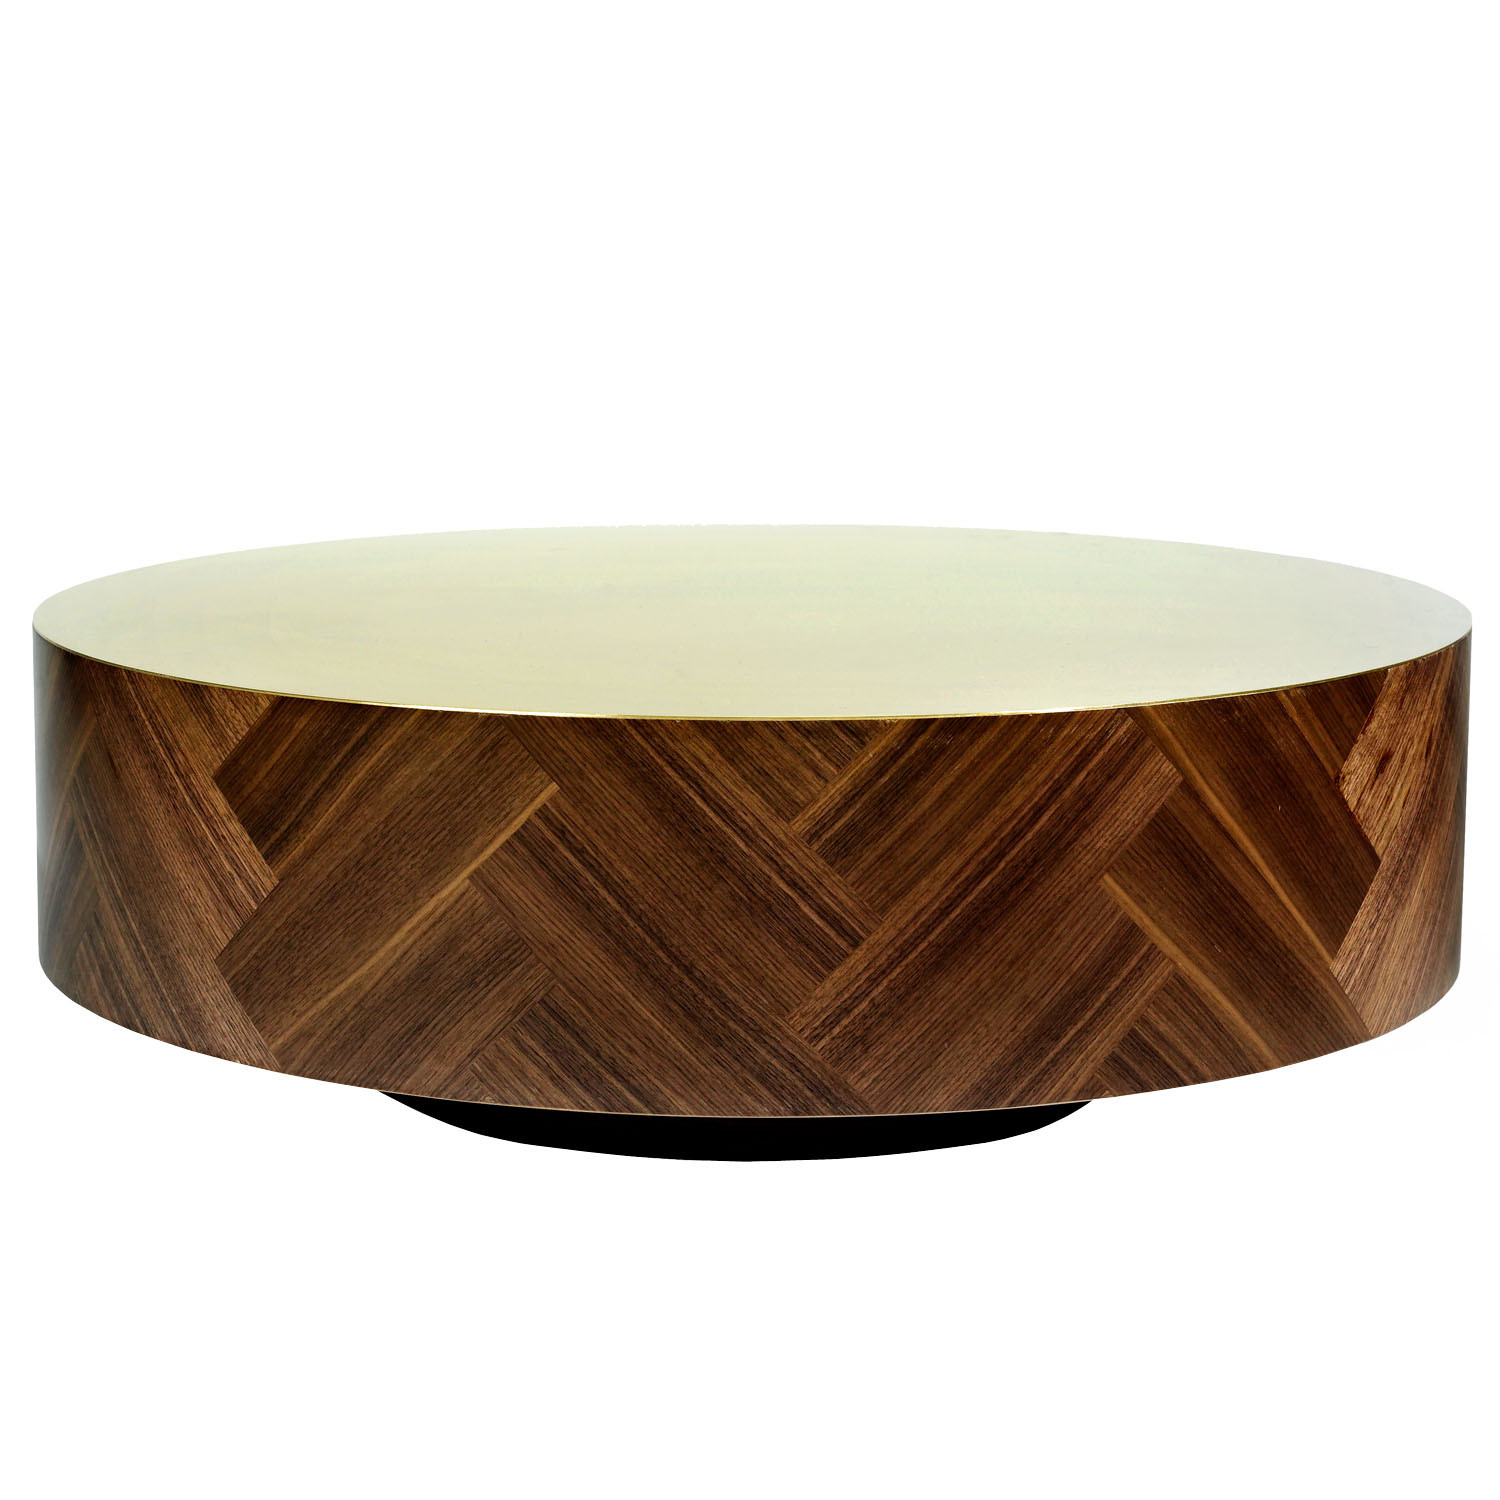 Lee Broom Parq Life Coffee Table